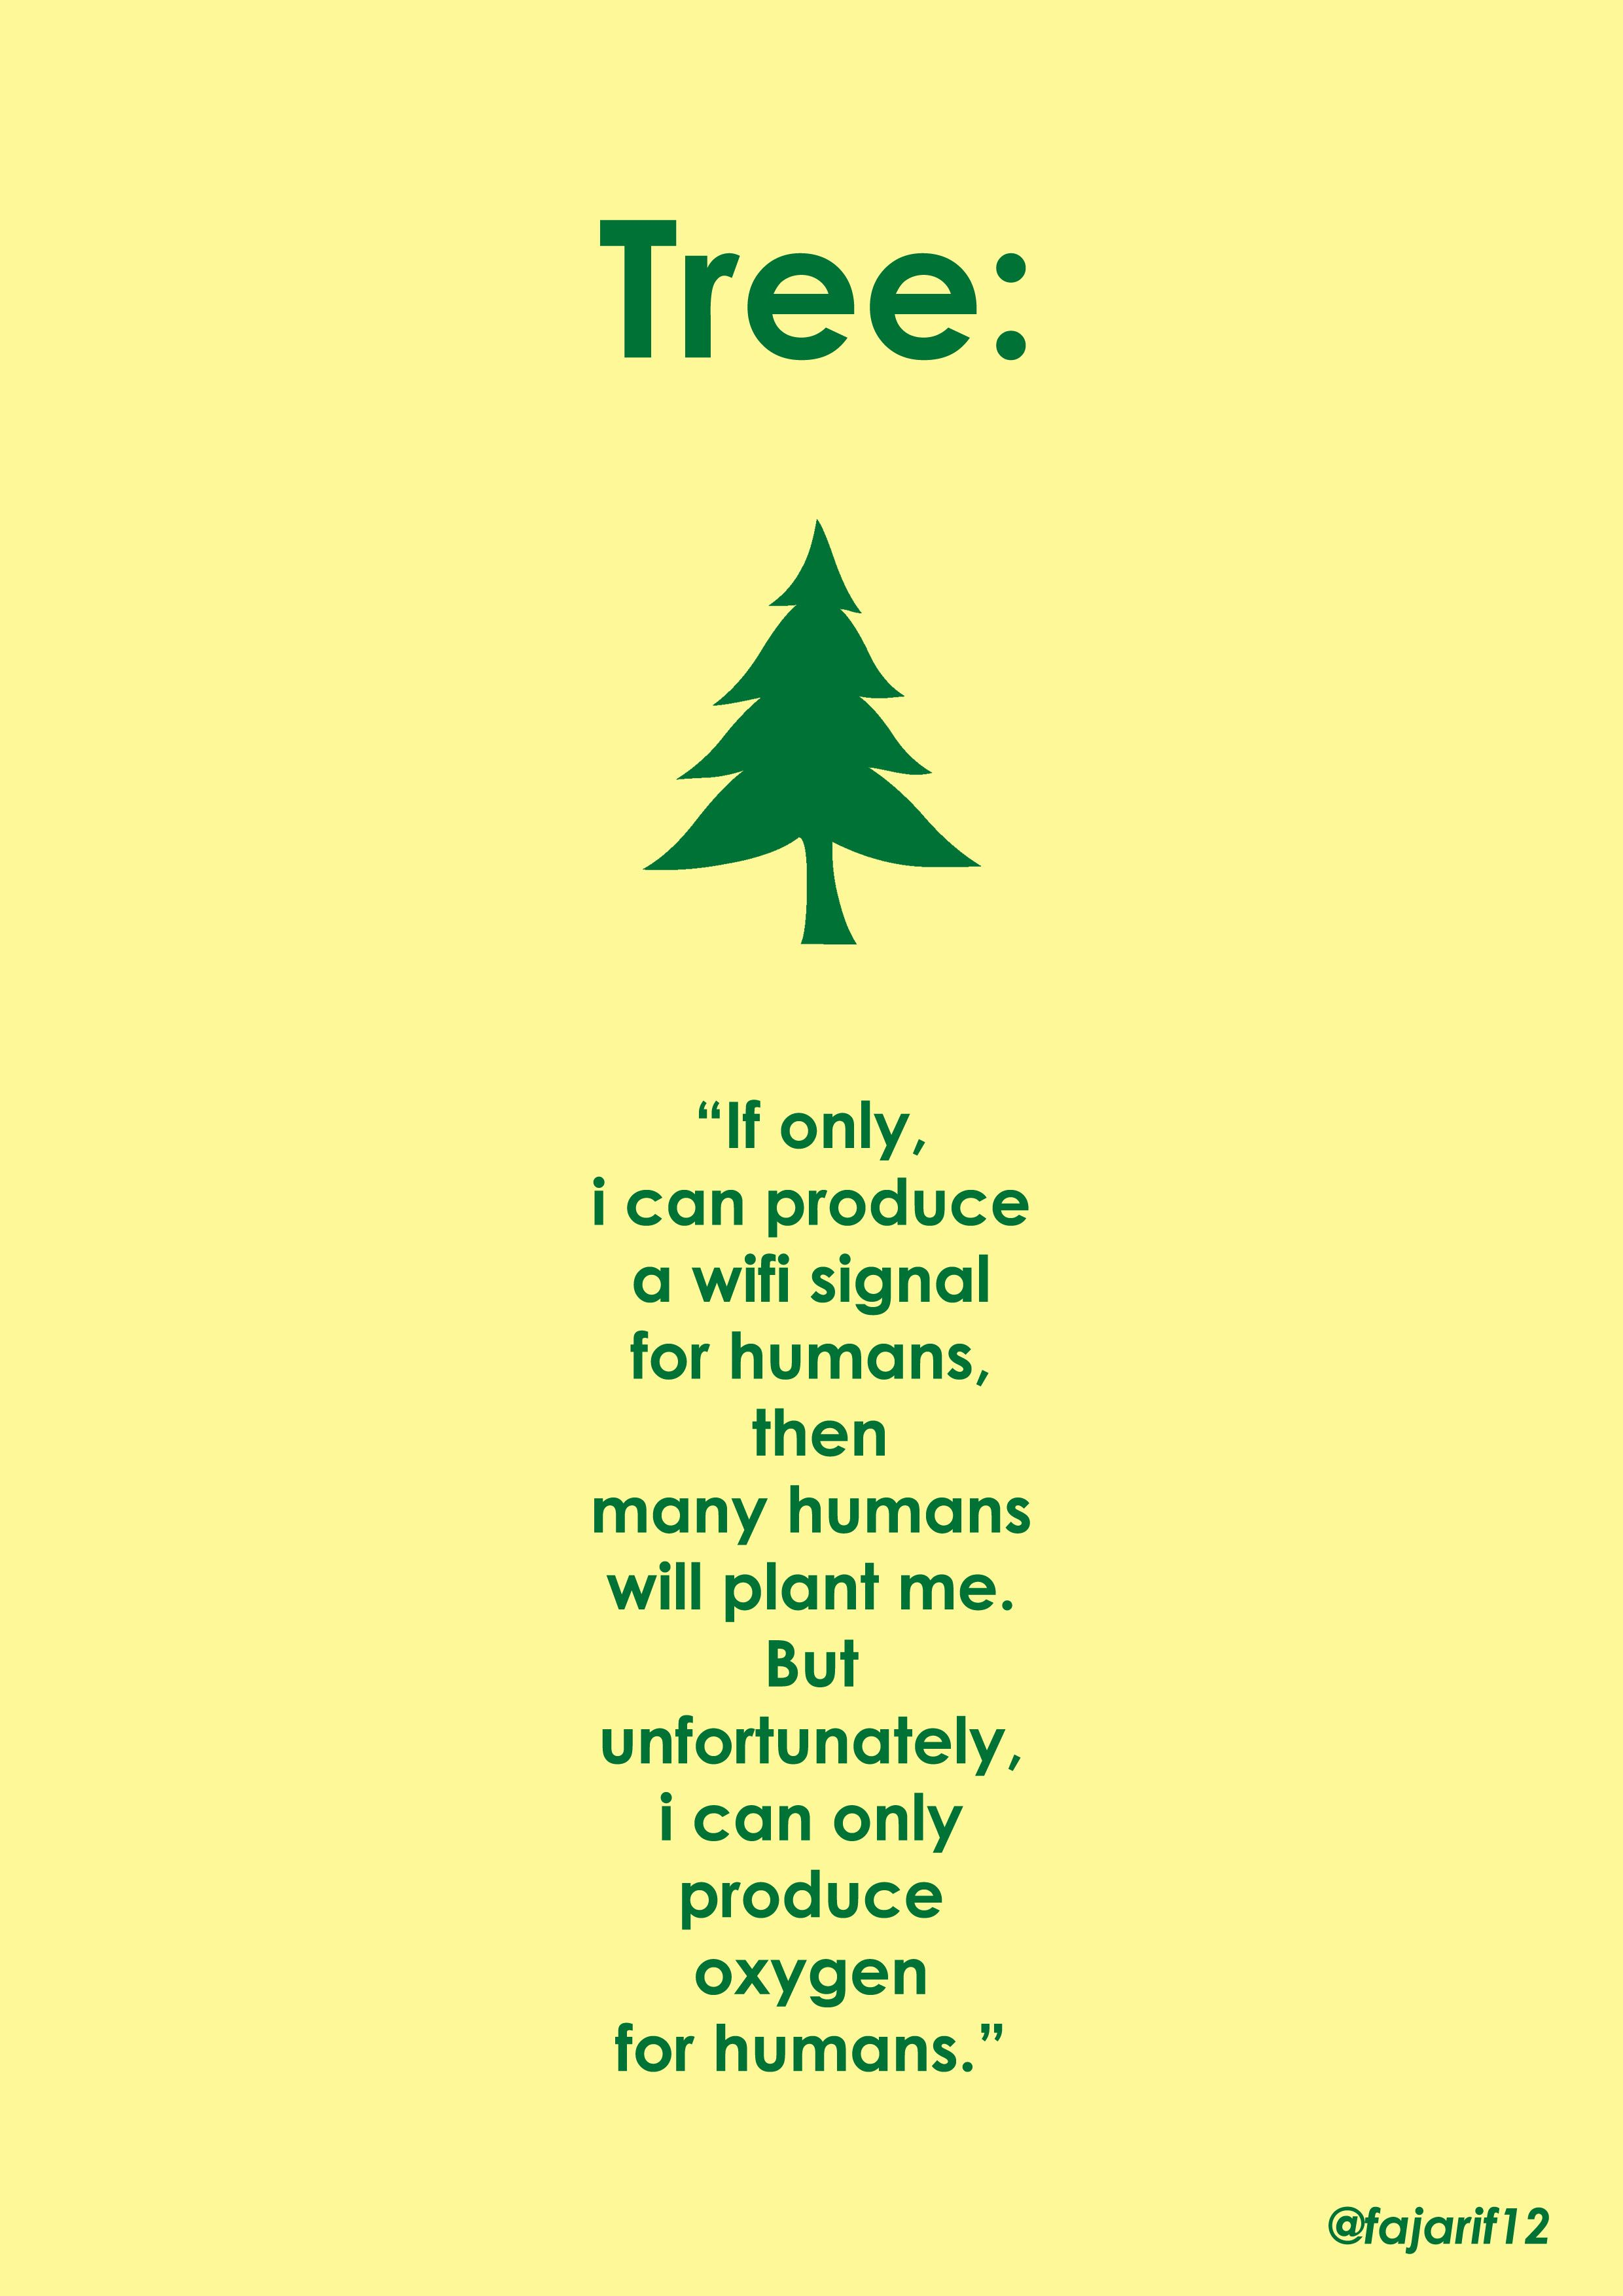 Global Warming Quotes Tree Environment Nature Global Warming Techno Life Quote